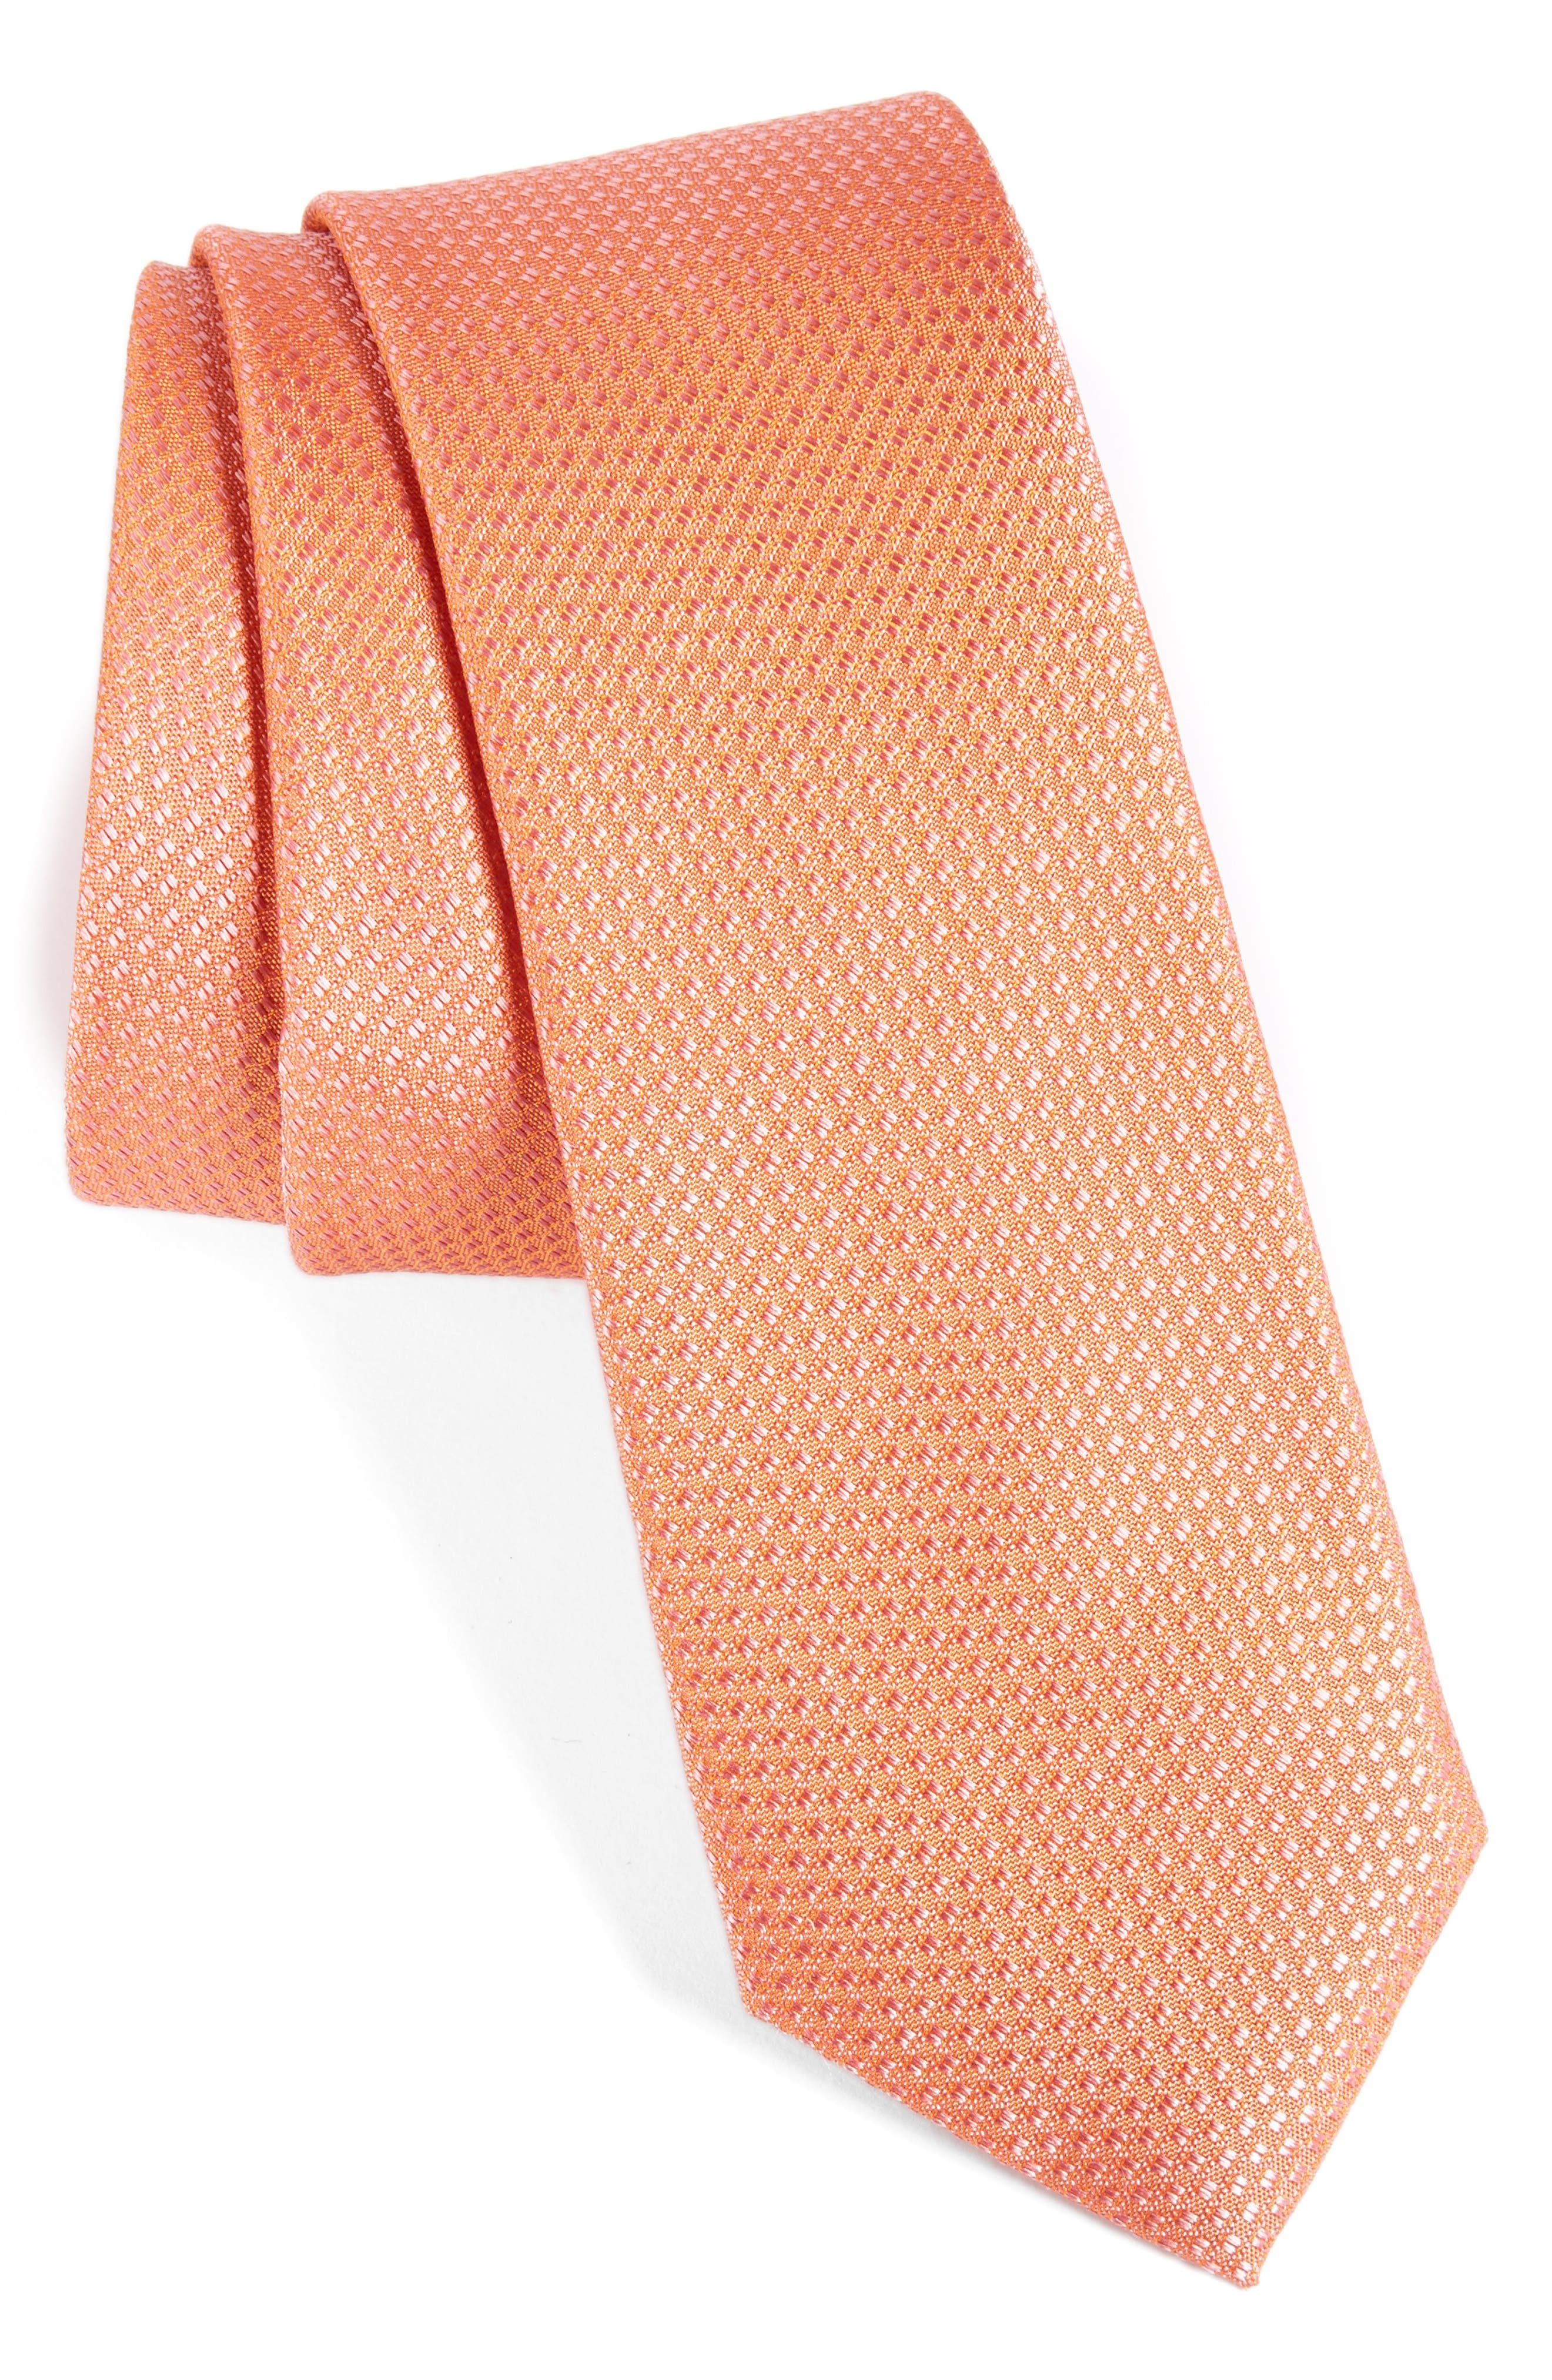 CALIBRATE Seattle Textured Silk Tie